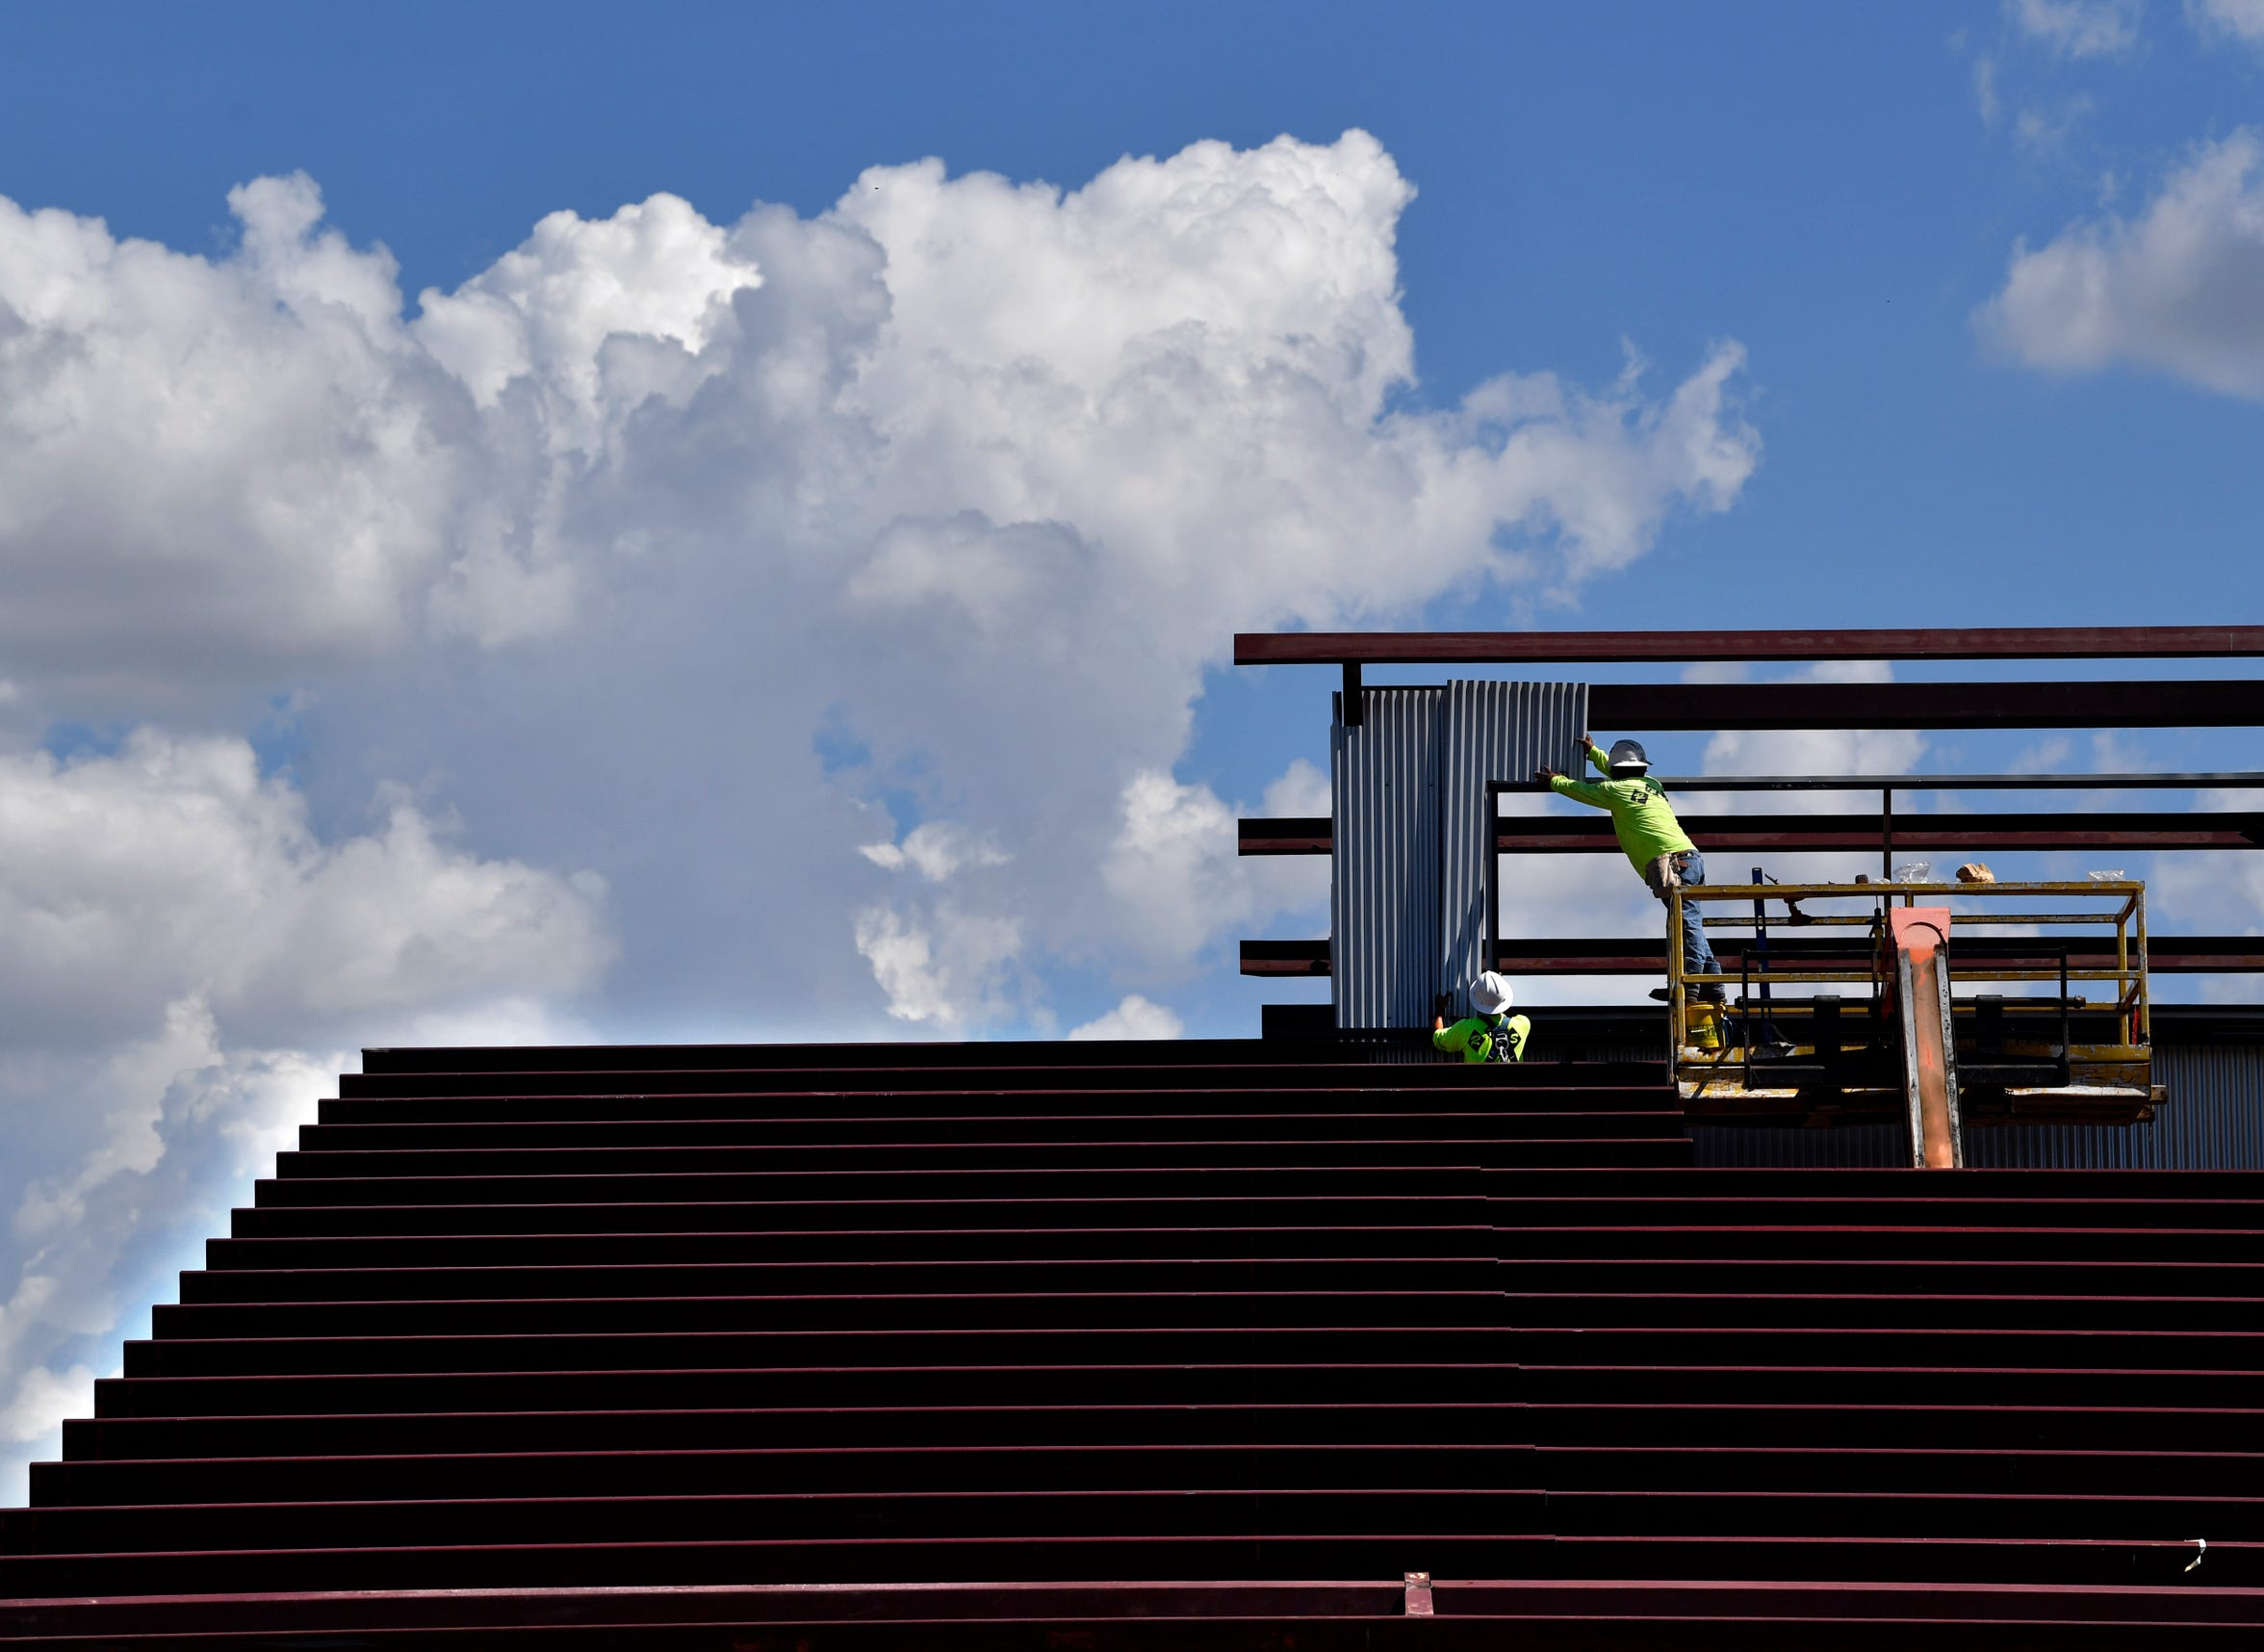 Workers install corrugated metal onto the frame of the new Sockdolager Brewing Co. on Sept. 26. The new location of the brew pub is on South First Street, where the Matera Paper Company stood before burning to the ground in 2012.